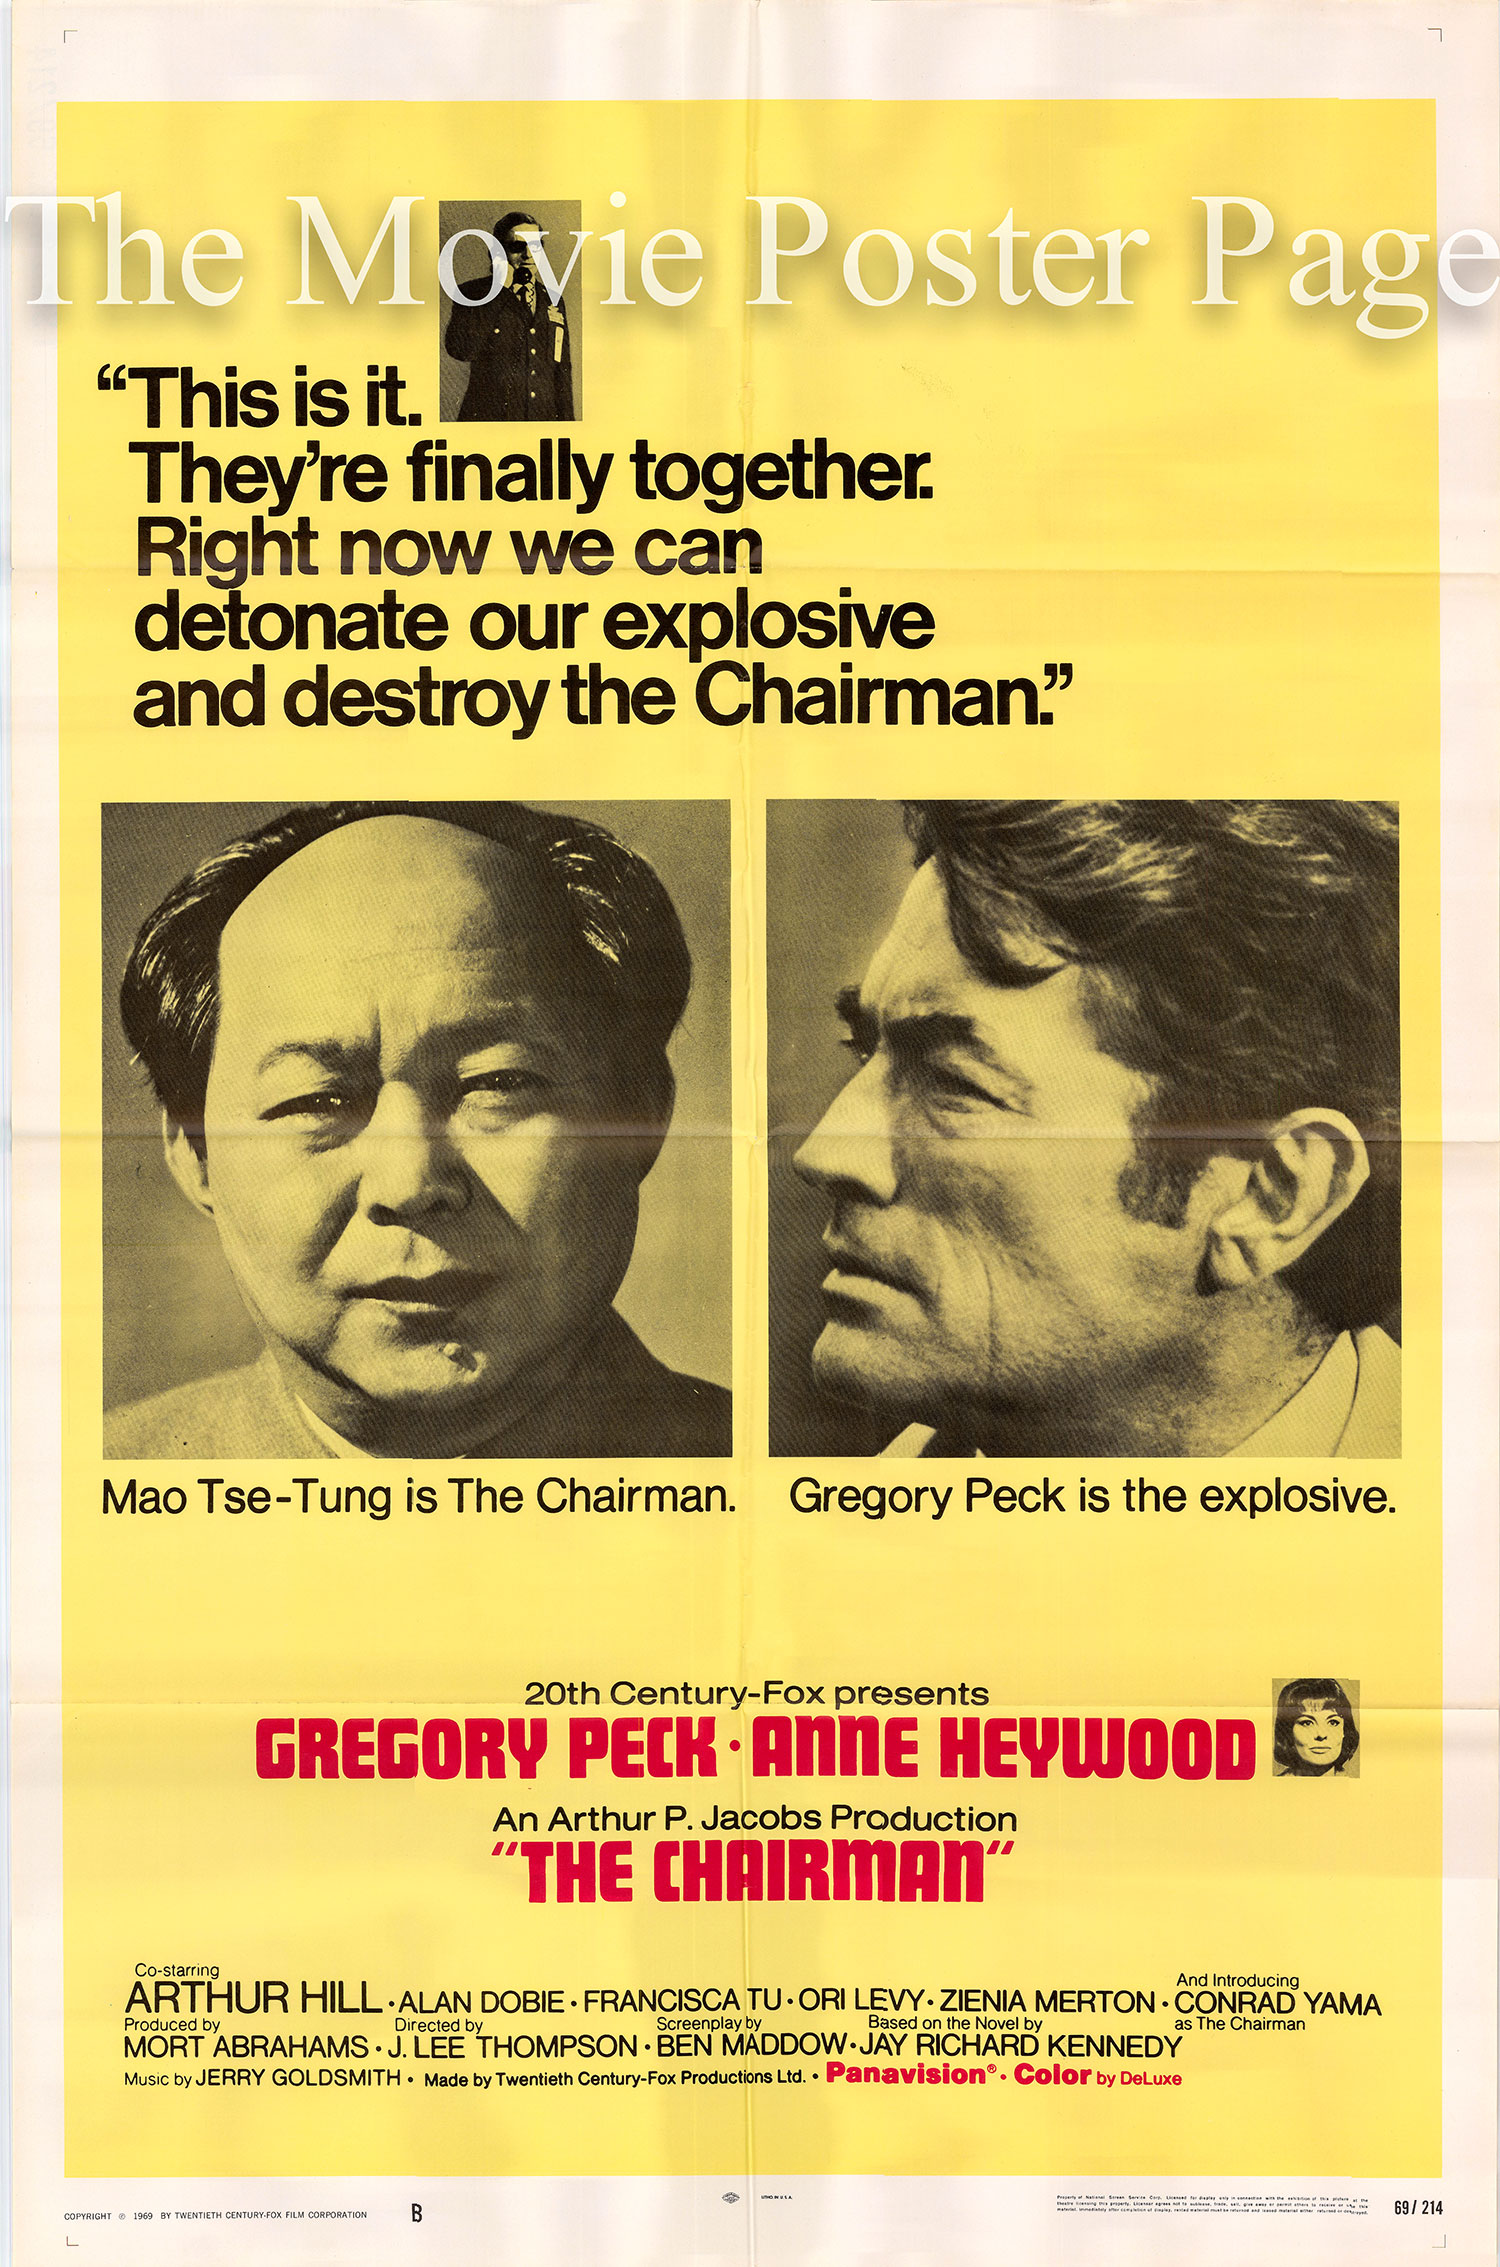 Pictured is a US one-sheet promotional poster for the 1969 J. Lee Thompson film The Chairman starring Gregory Peck.